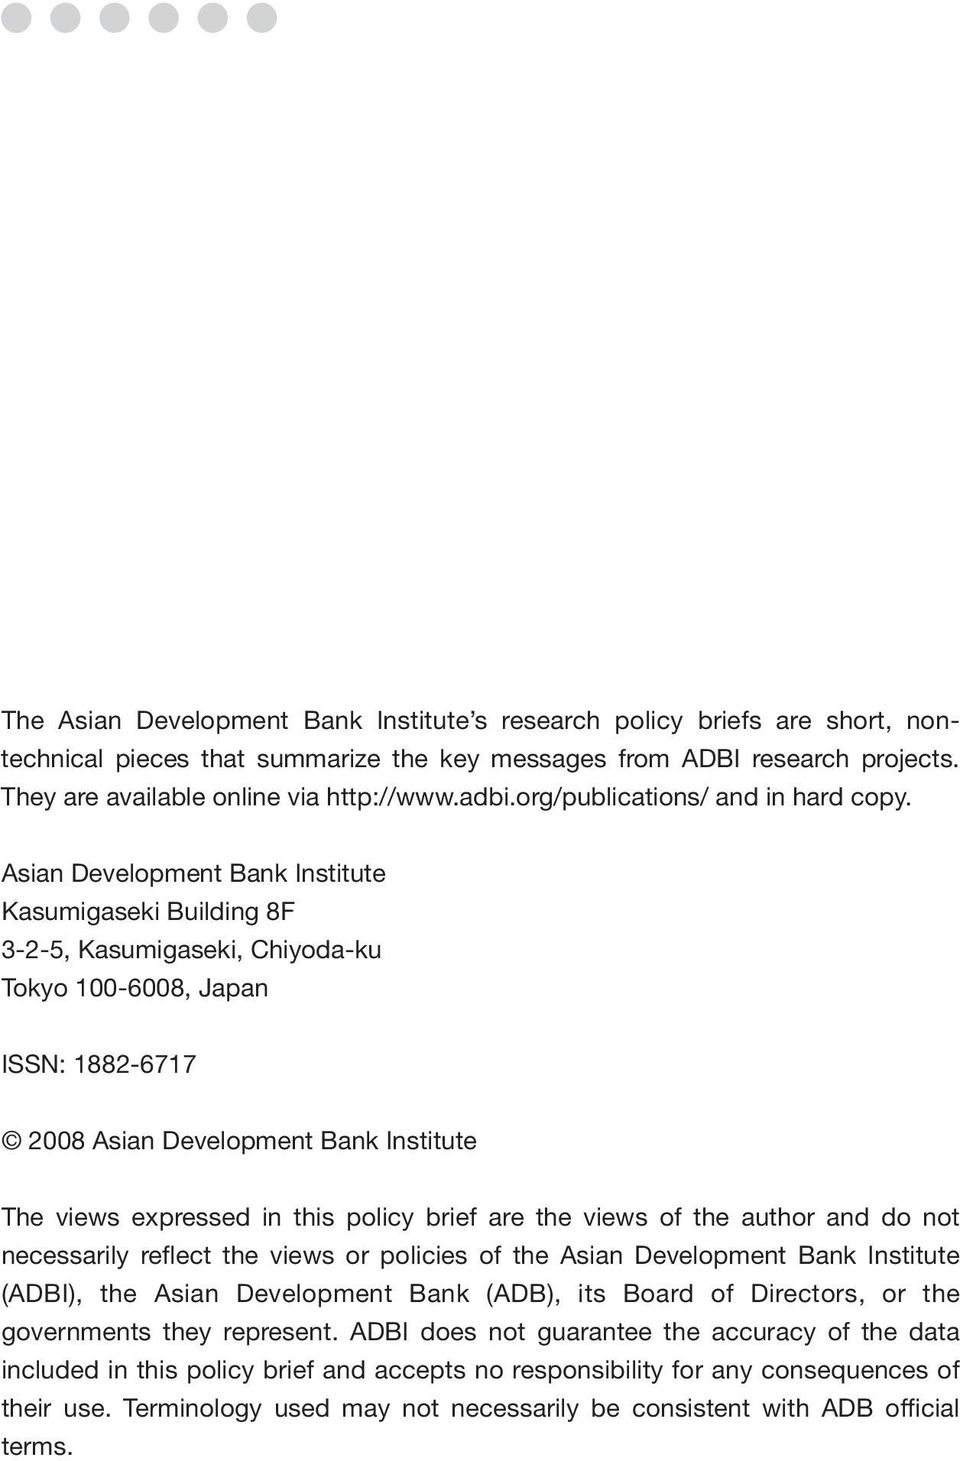 Asian Development Bank Institute Kasumigaseki Building 8F 3-2-5, Kasumigaseki, Chiyoda-ku Tokyo 100-6008, Japan ISSN: 1882-6717 2008 Asian Development Bank Institute The views expressed in this